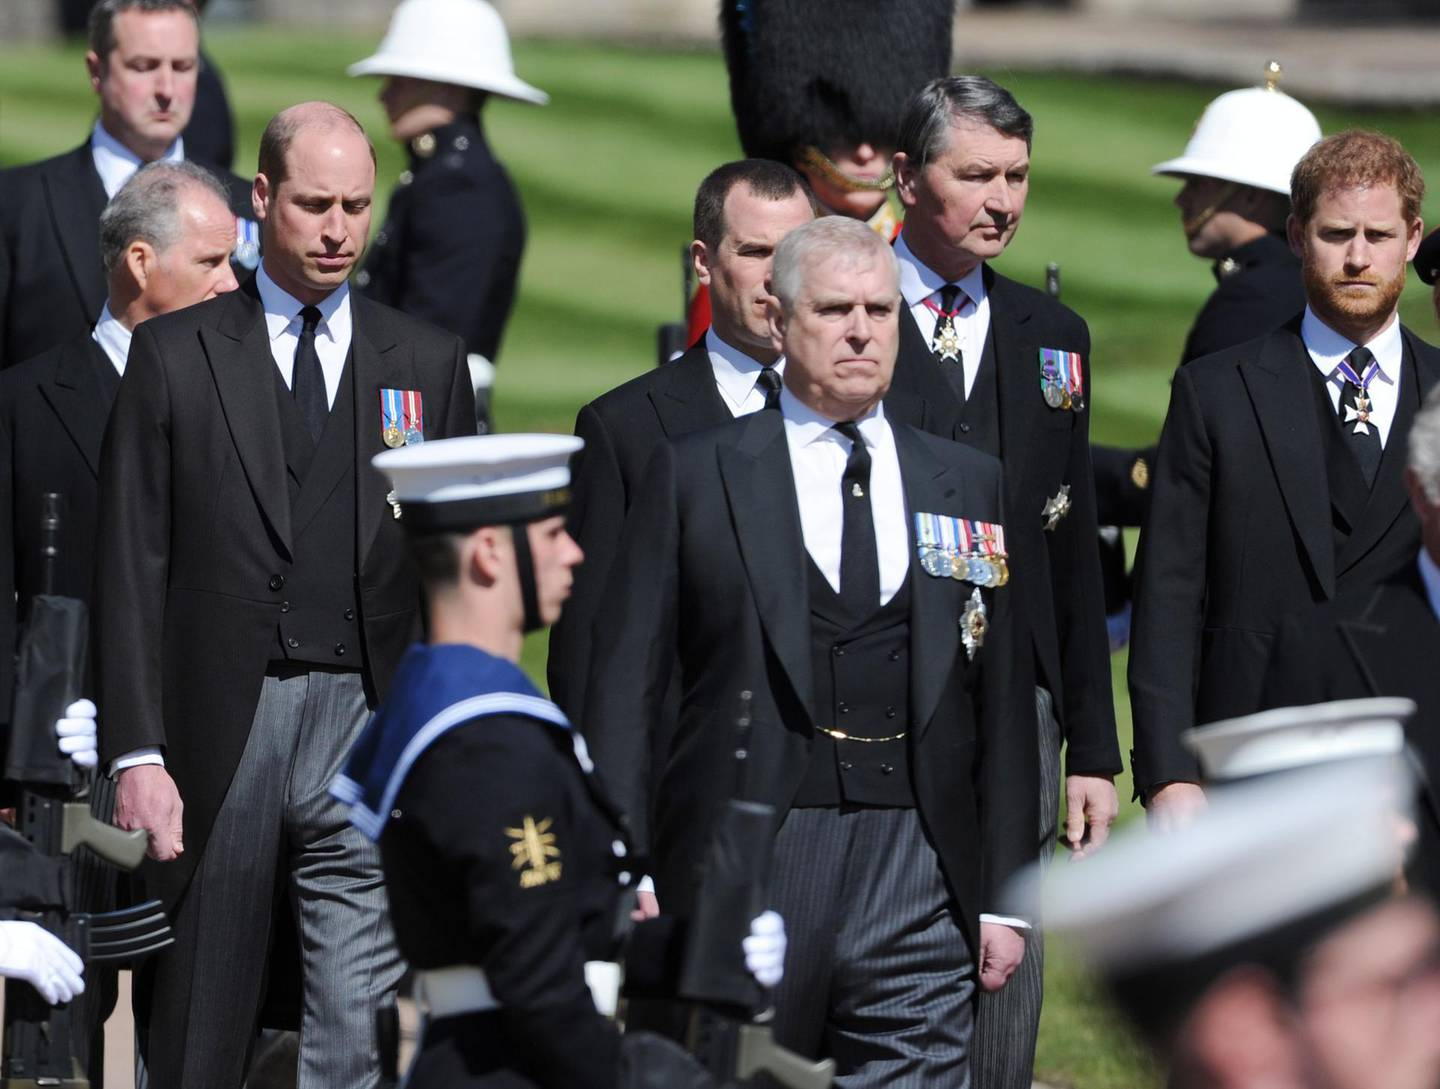 WINDSOR, ENGLAND - APRIL 17:  Prince Andrew, Duke of York; Prince Harry, Duke of Sussex; Prince William, Duke of Cambridge and Vice-Admiral Sir Timothy Laurence walk behind The Duke of Edinburgh's coffin, covered with His Royal Highness's Personal Standard, during the Ceremonial Procession during the funeral of Prince Philip, Duke of Edinburgh at Windsor Castle on April 17, 2021 in Windsor, England. Prince Philip of Greece and Denmark was born 10 June 1921, in Greece. He served in the British Royal Navy and fought in WWII. He married the then Princess Elizabeth on 20 November 1947 and was created Duke of Edinburgh, Earl of Merioneth, and Baron Greenwich by King VI. He served as Prince Consort to Queen Elizabeth II until his death on April 9 2021, months short of his 100th birthday. His funeral takes place today at Windsor Castle with only 30 guests invited due to Coronavirus pandemic restrictions. (Photo by Mark Large-WPA Pool/Getty Images)